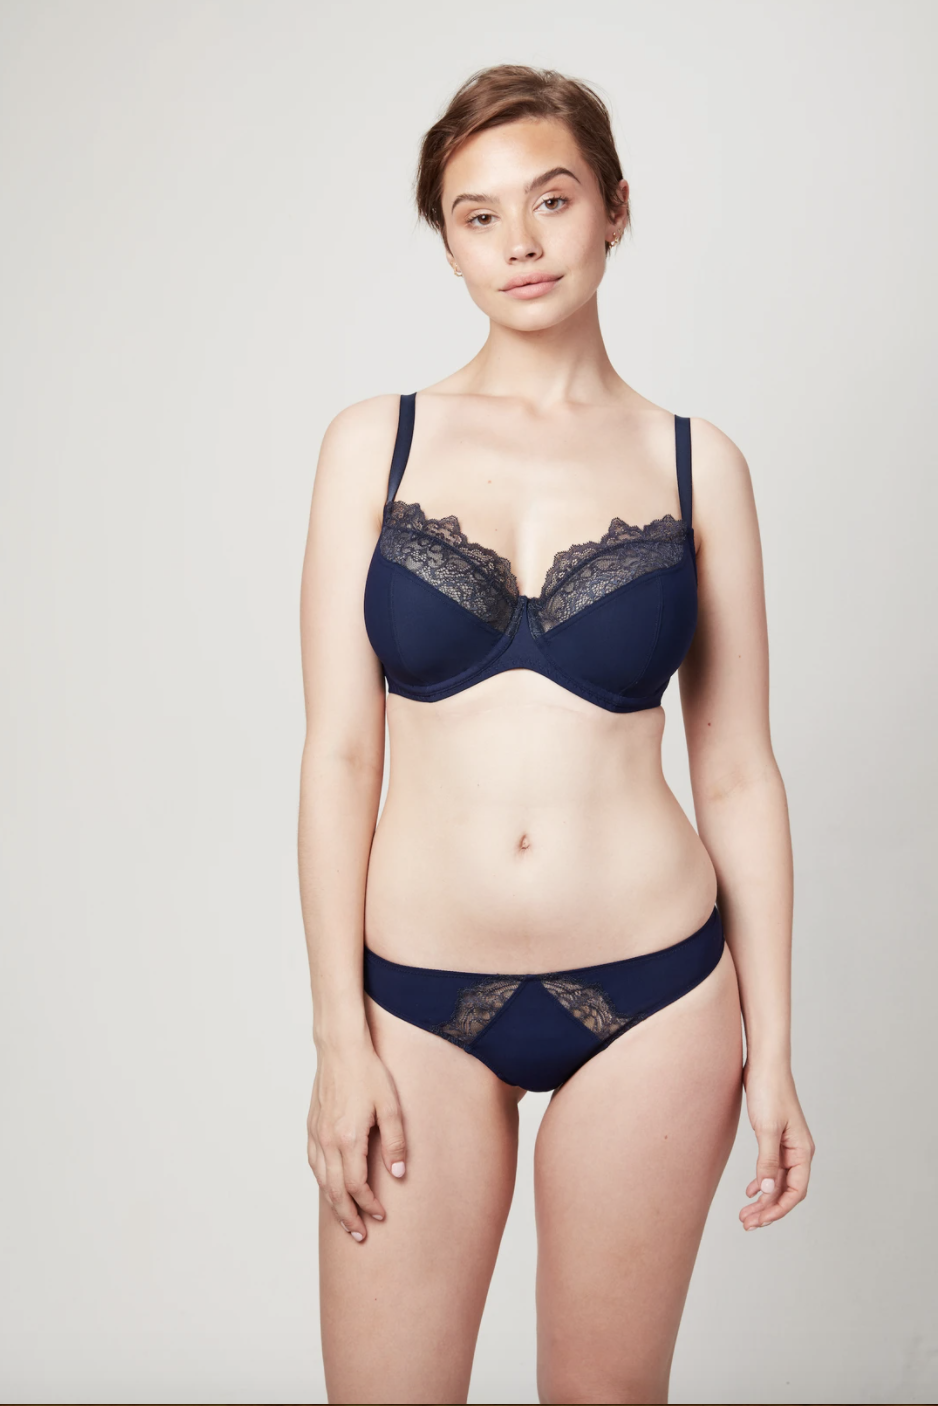 "<p><strong>Liberté</strong></p><p>liberte.co</p><p><strong>$41.00</strong></p><p><a href=""https://www.liberte.co/collections/panties/products/crosby-scalloped-cheeky"" rel=""nofollow noopener"" target=""_blank"" data-ylk=""slk:SHOP IT"" class=""link rapid-noclick-resp"">SHOP IT</a></p><p>For those who love scallop designs, this mid-rise underwear is for you. The sexy detail complements the semi-sheer and high-cut leg details of this undie. </p>"